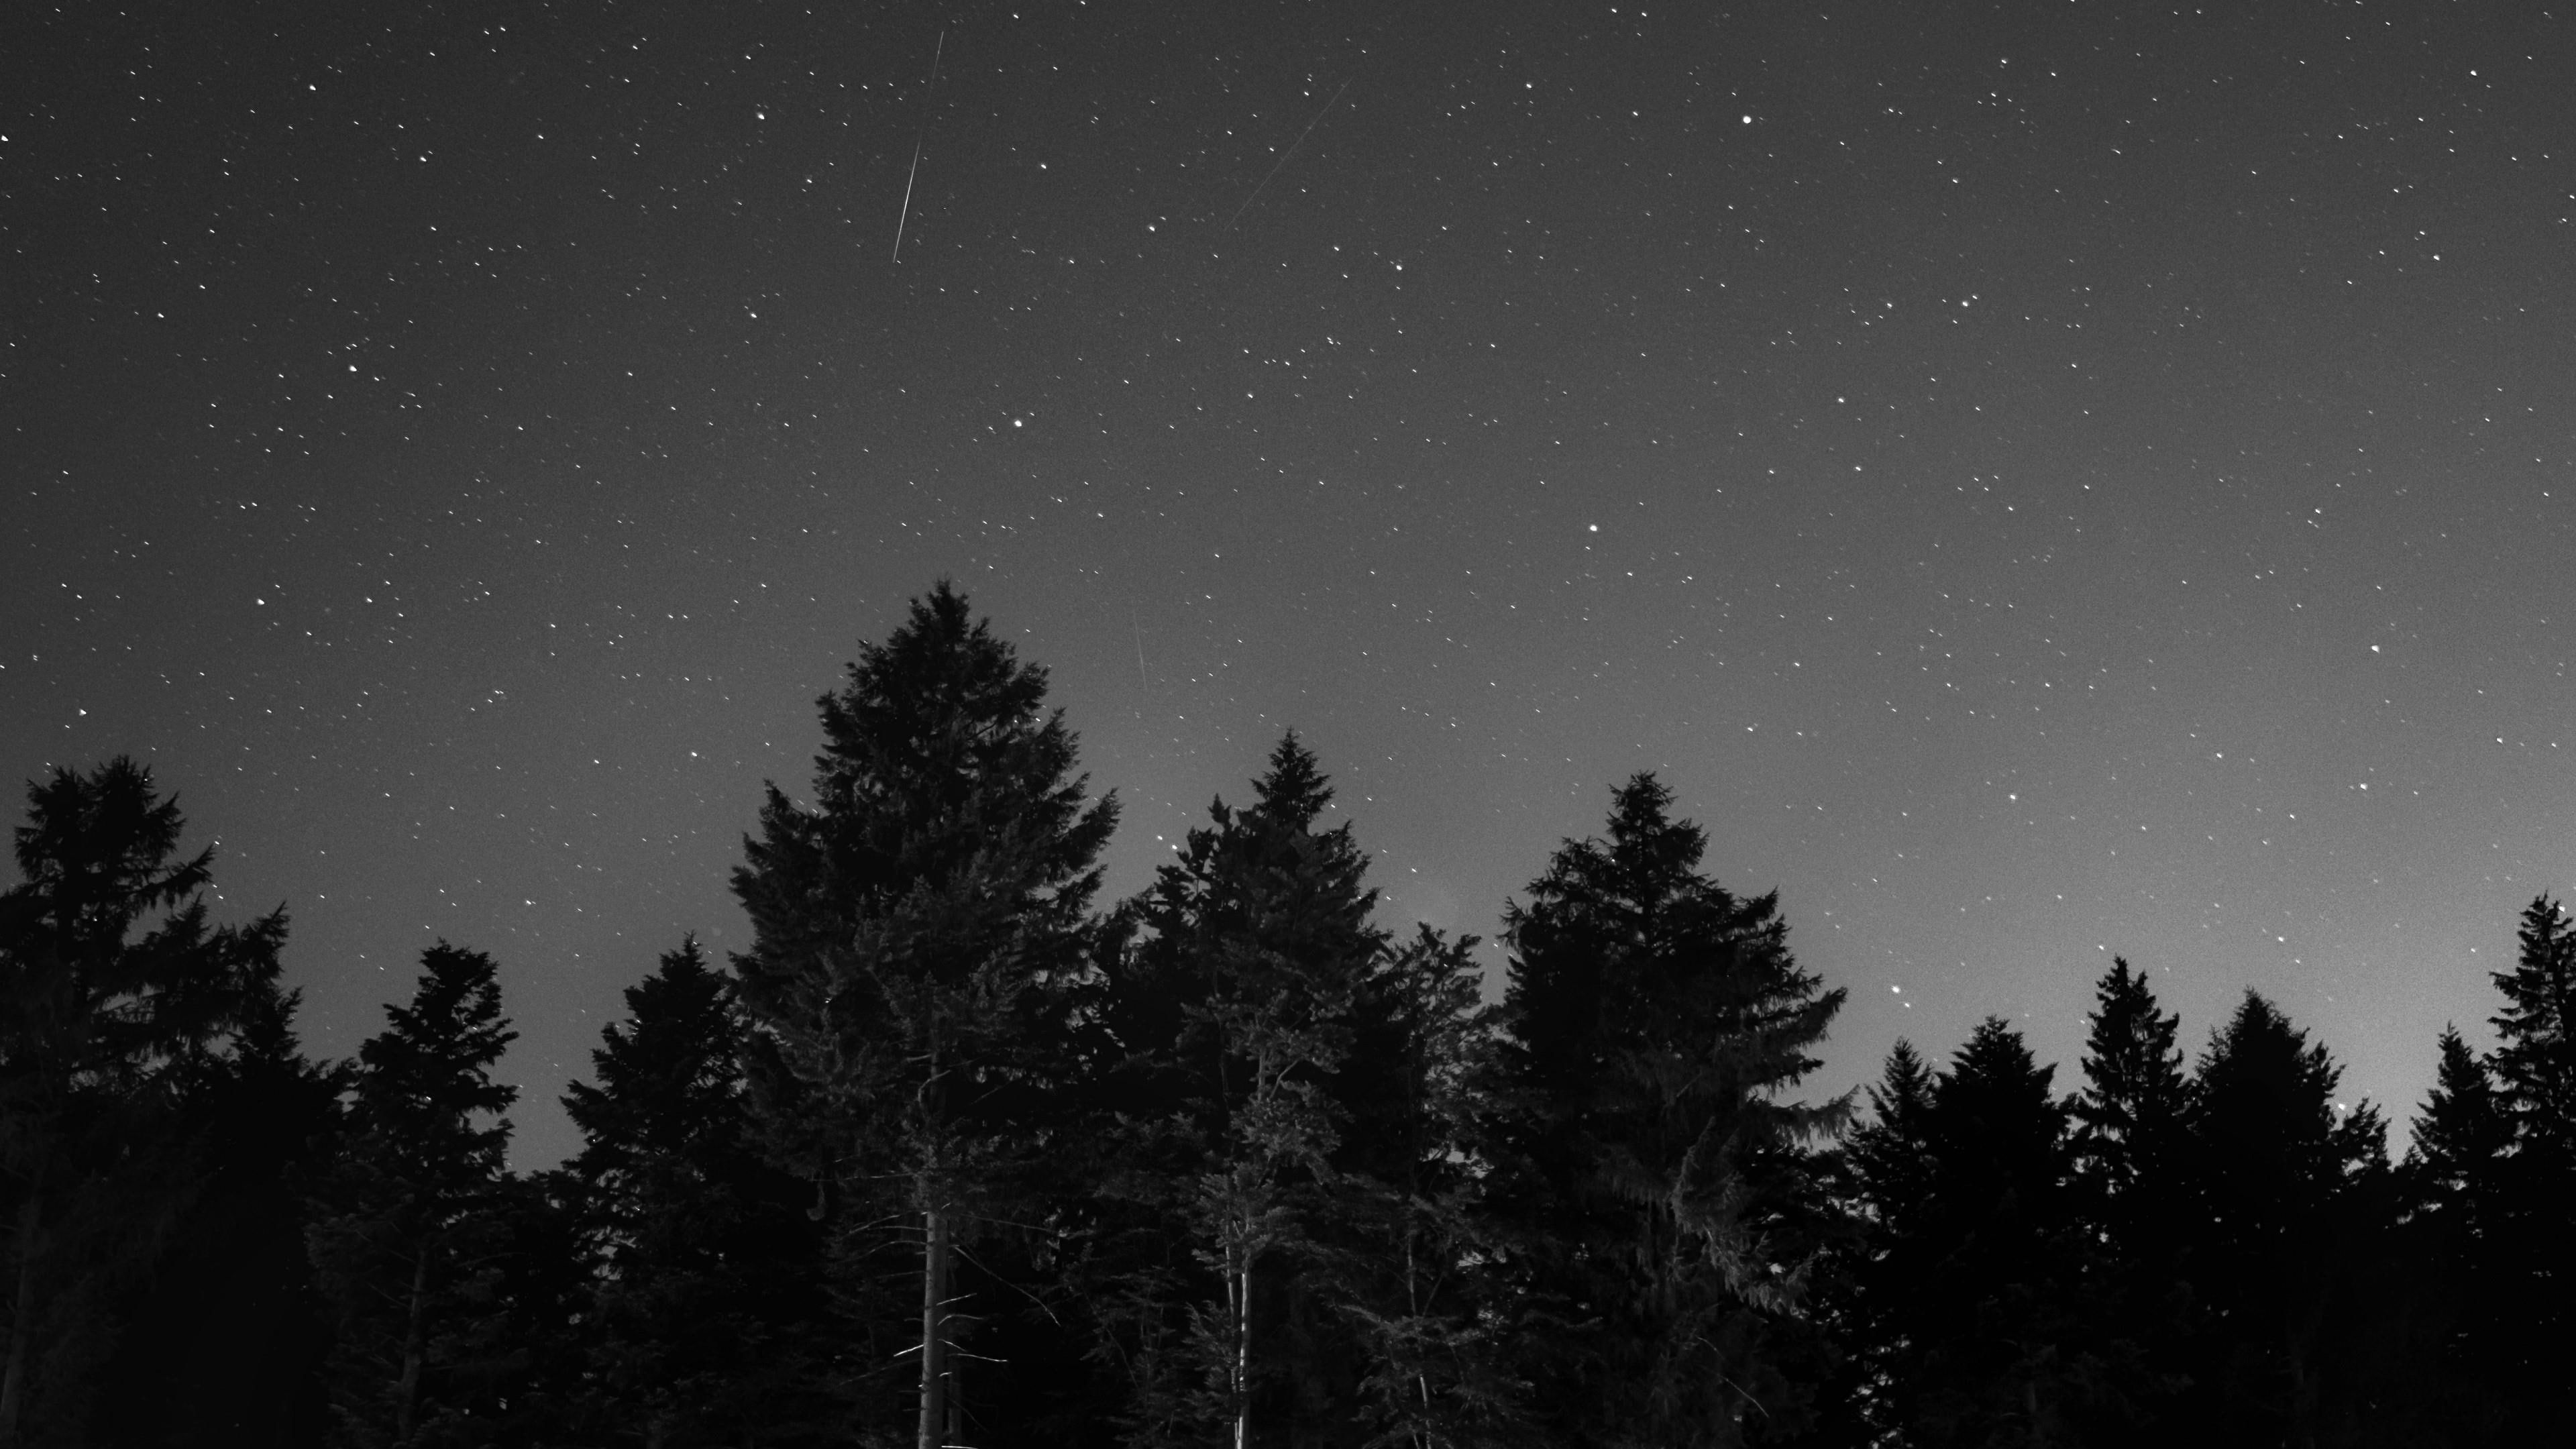 Starry Sky Night Dark Trees Black And White Monochrome Photography Starry Night Forest Photo Dark Pictures Monochrome Photography Forest Black And White